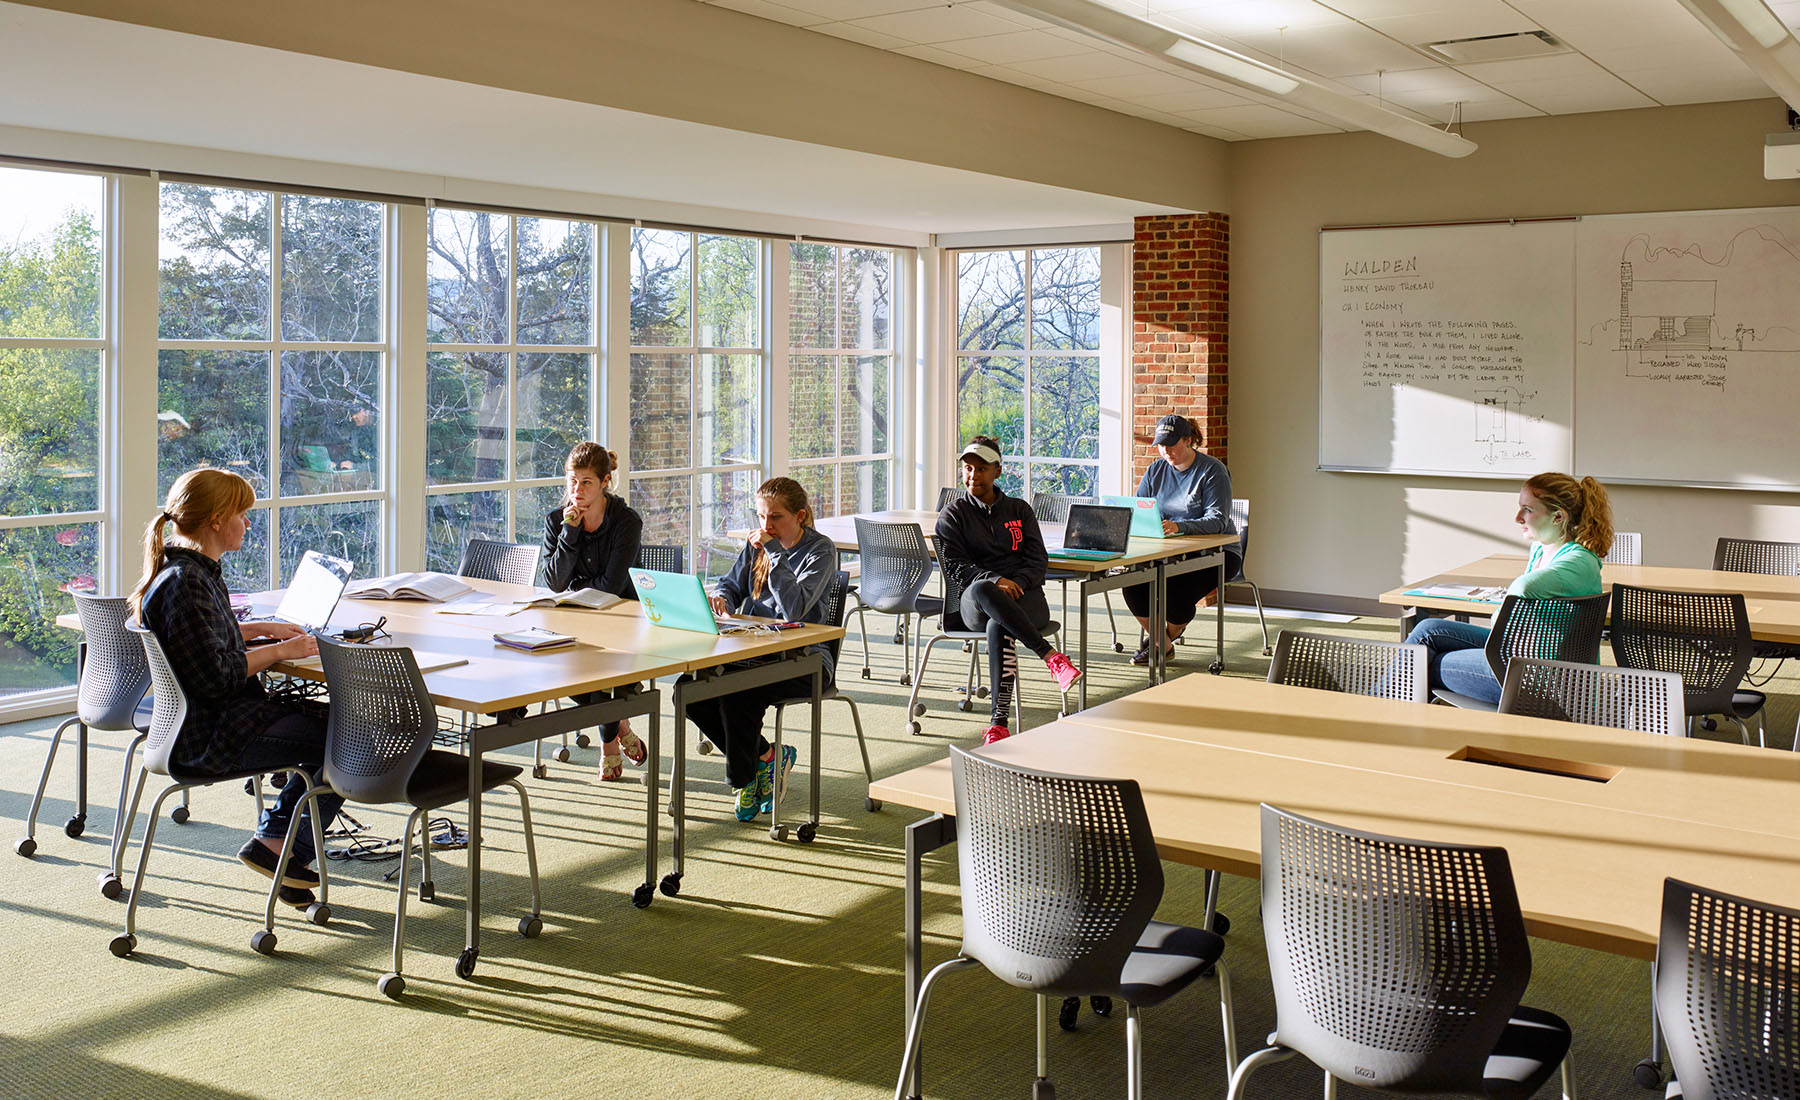 Sweet Briar College challenged VMDO to design an addition that would complement a library held in high esteem by a strong alumnae base while also propelling the College into the evolving landscape of learning space design.